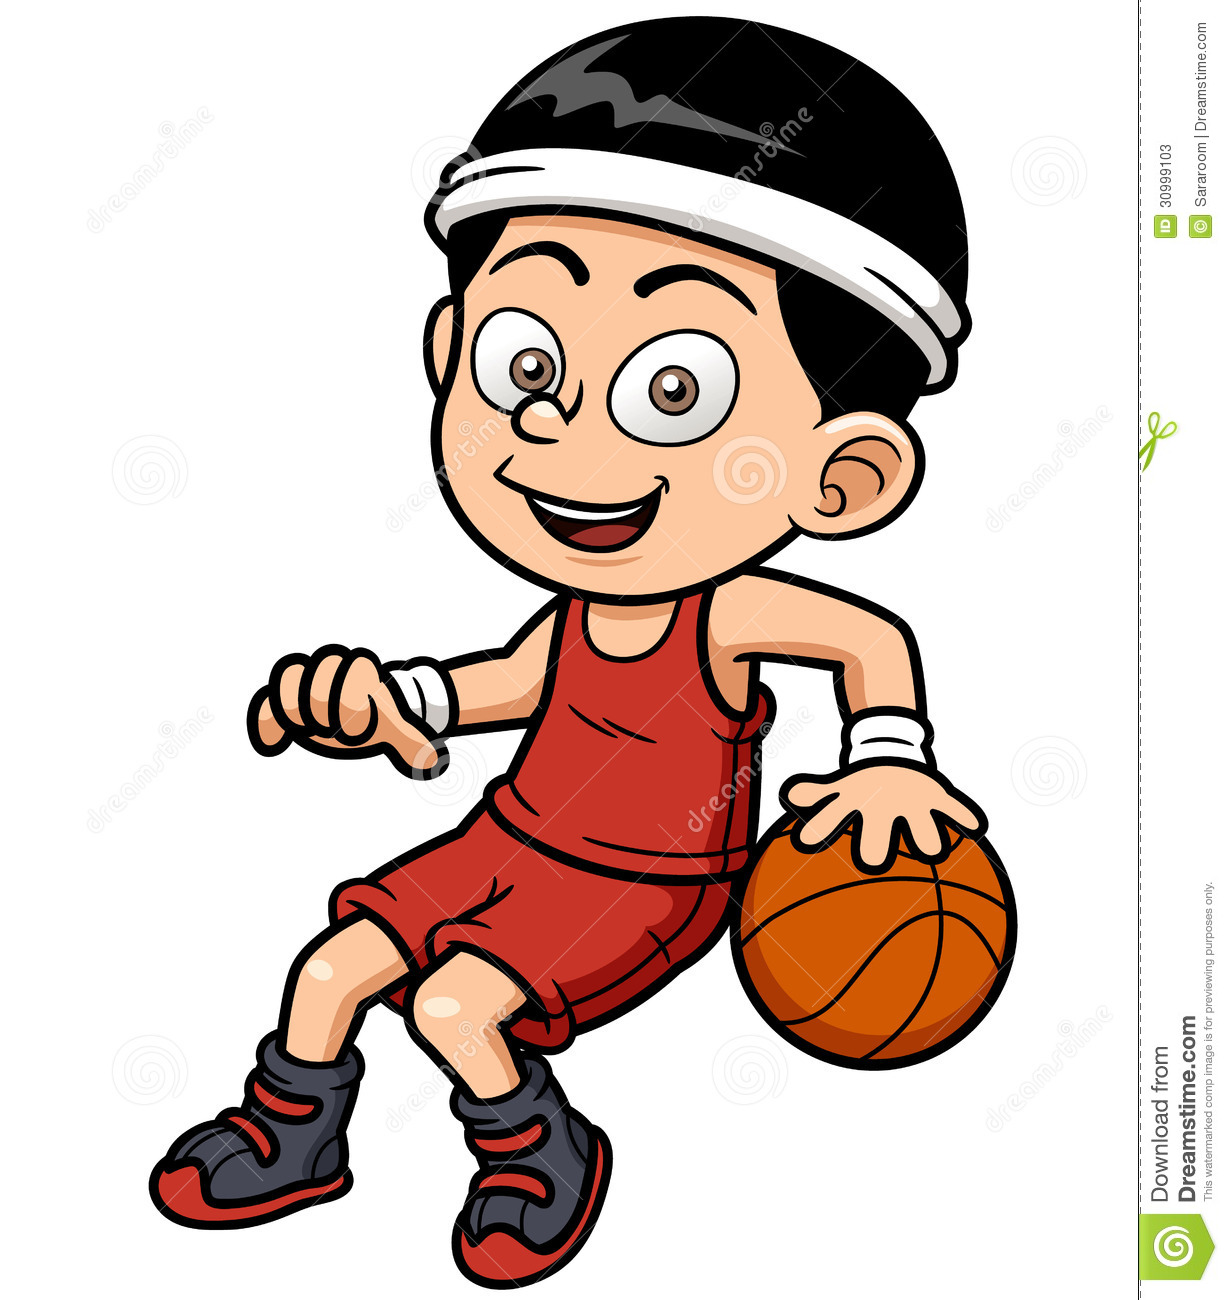 Cartoon Characters Playing Basketball : Cartoon basketball player stock vector illustration of